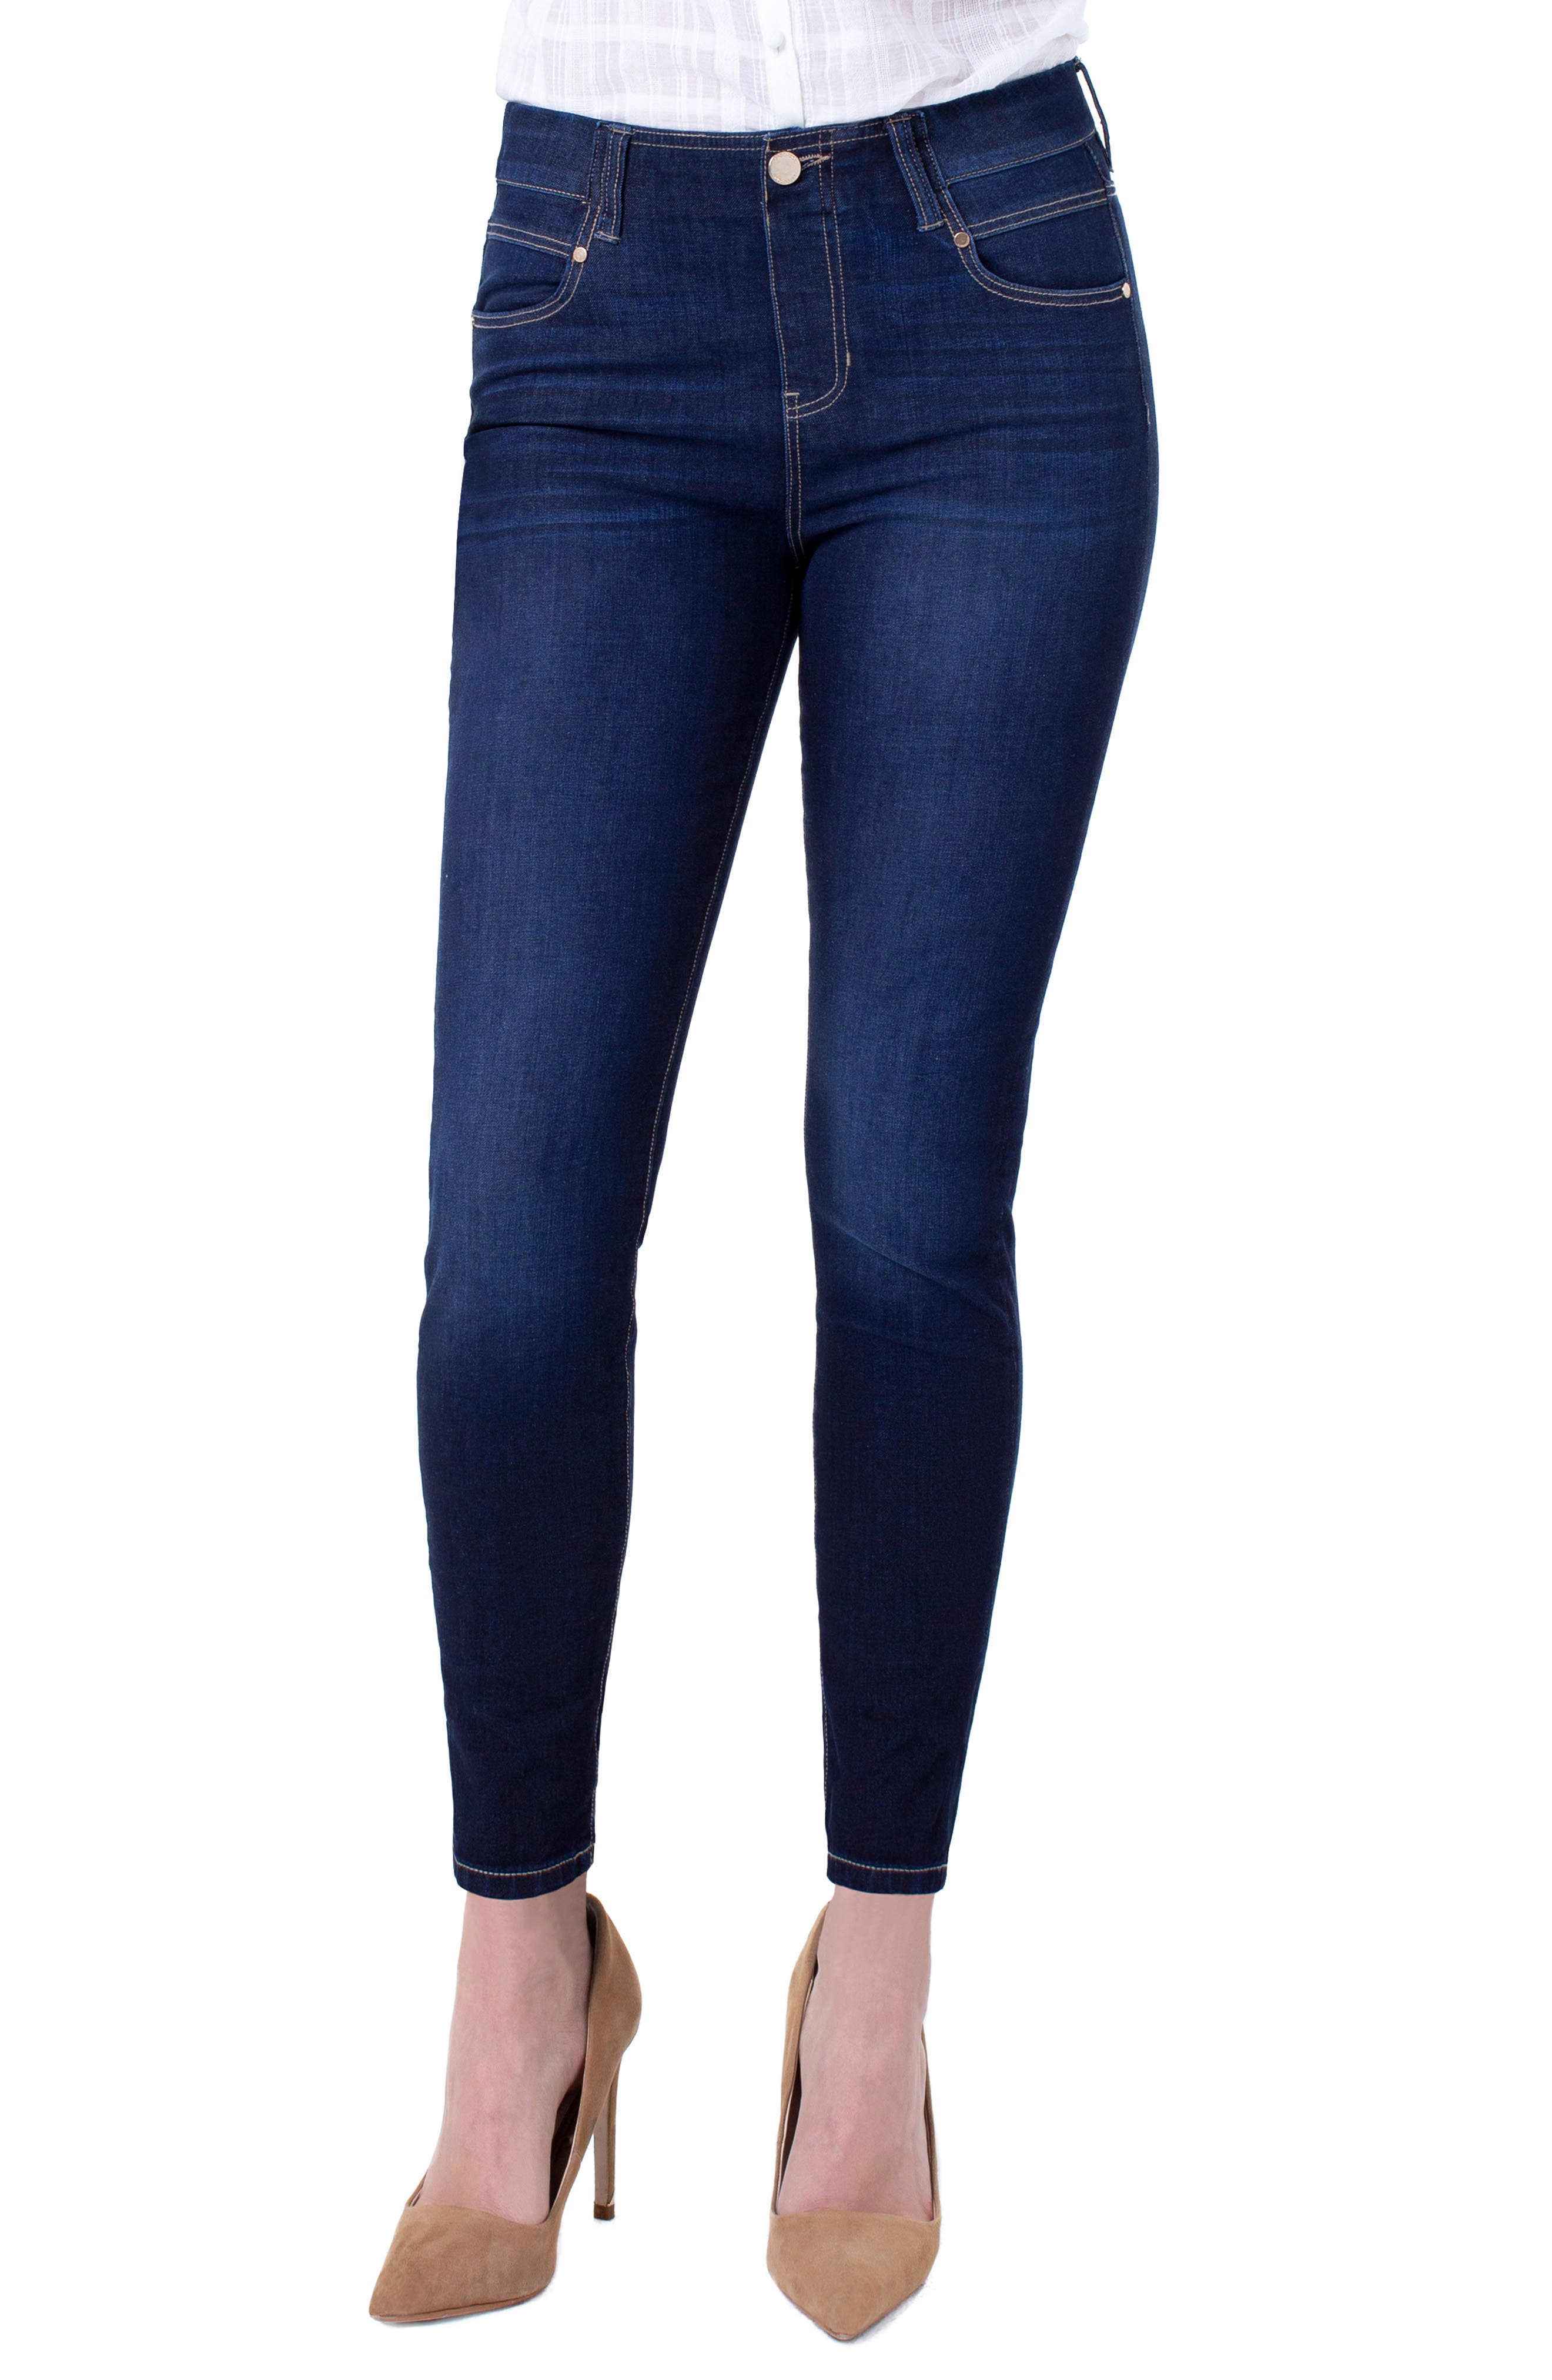 Gia Glider Pull-On Skinny Jeans